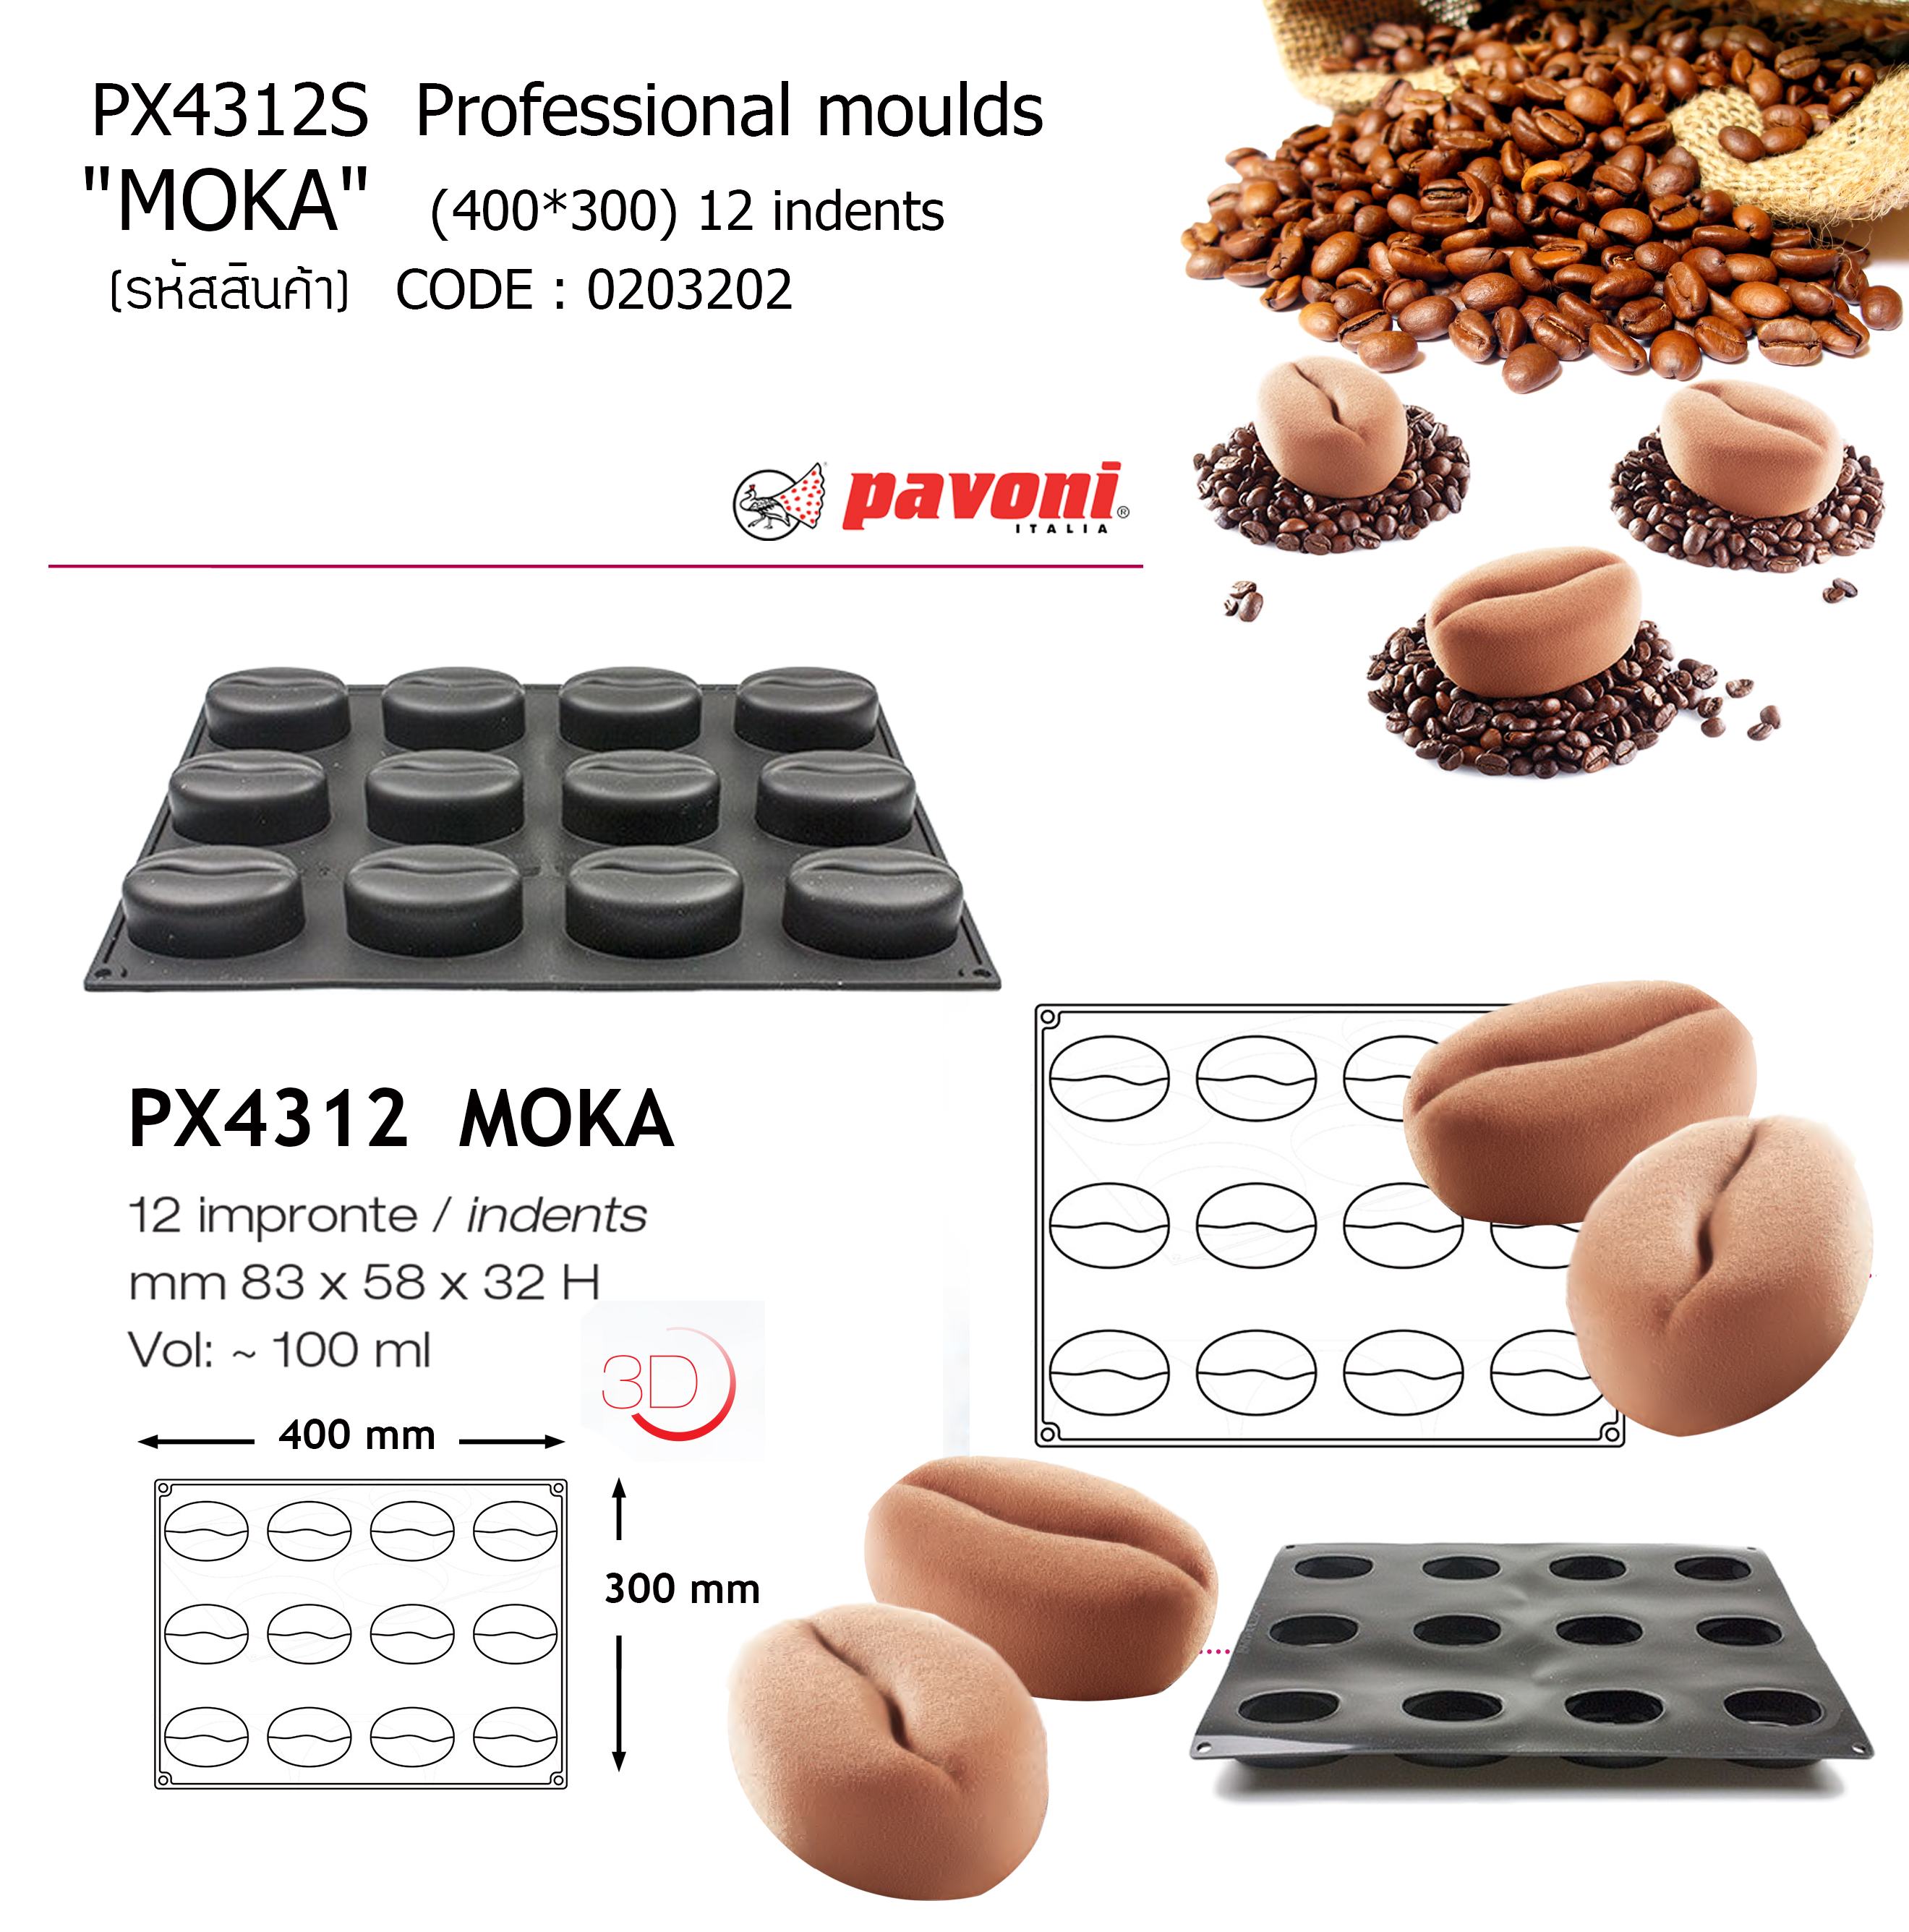 "PX4312S Professional moulds 400*300 ""Moka"" 12 indents"